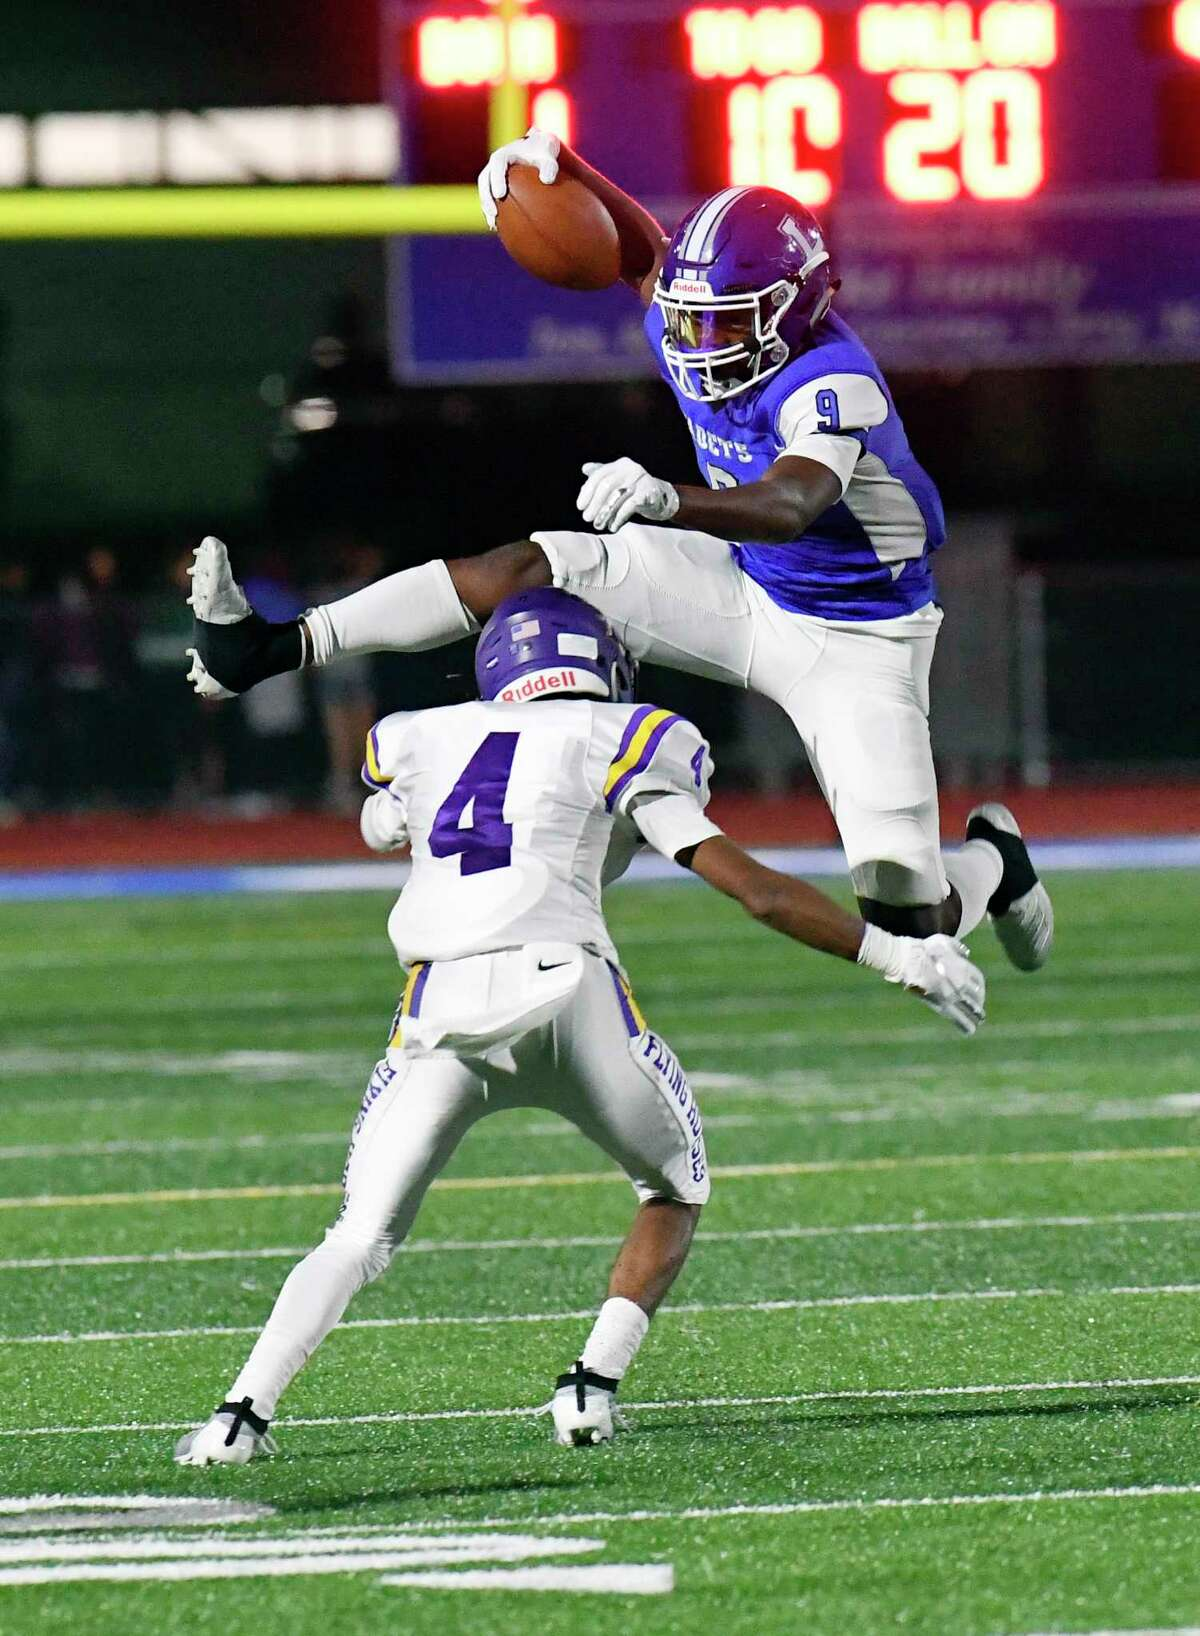 La Salle Institute's Traydon Lawrence (9) jumps over Troy's Makai Cruel (4) while running the ball during the first half of a Section II High School football game Friday, Sept. 6, 2019, in Troy, N.Y. (Hans Pennink / Special to the Times Union)